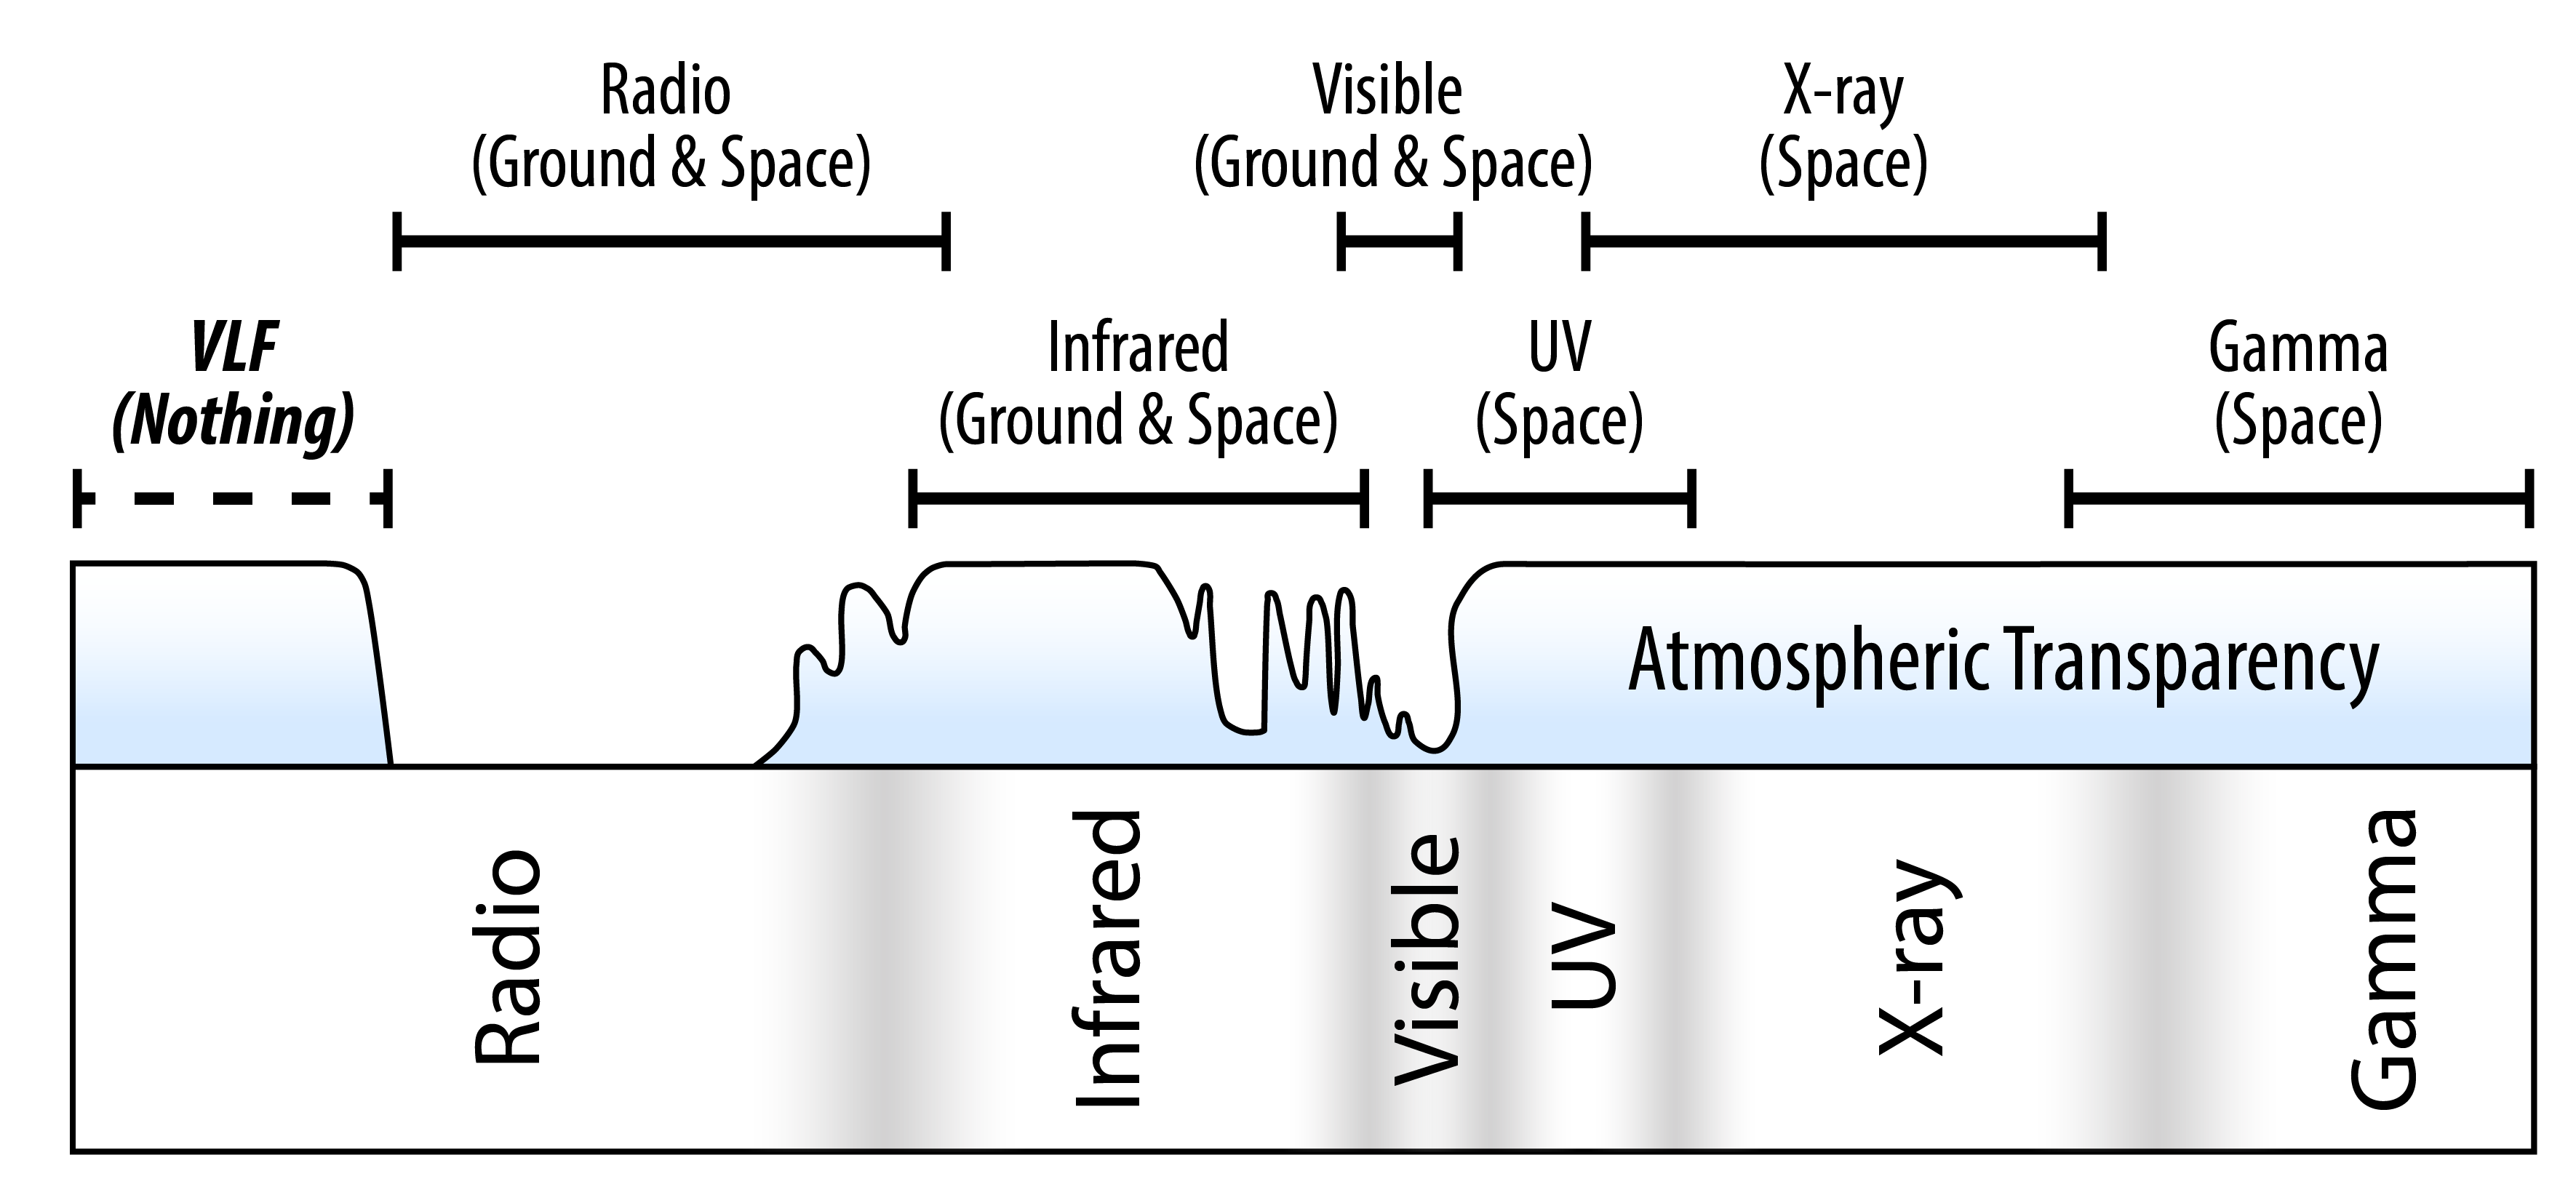 Lunar far side larouchepac coverage of the electromagnetic spectrum by various space and ground based telescopes note the very low end of the radio frequencies which currently have ccuart Images